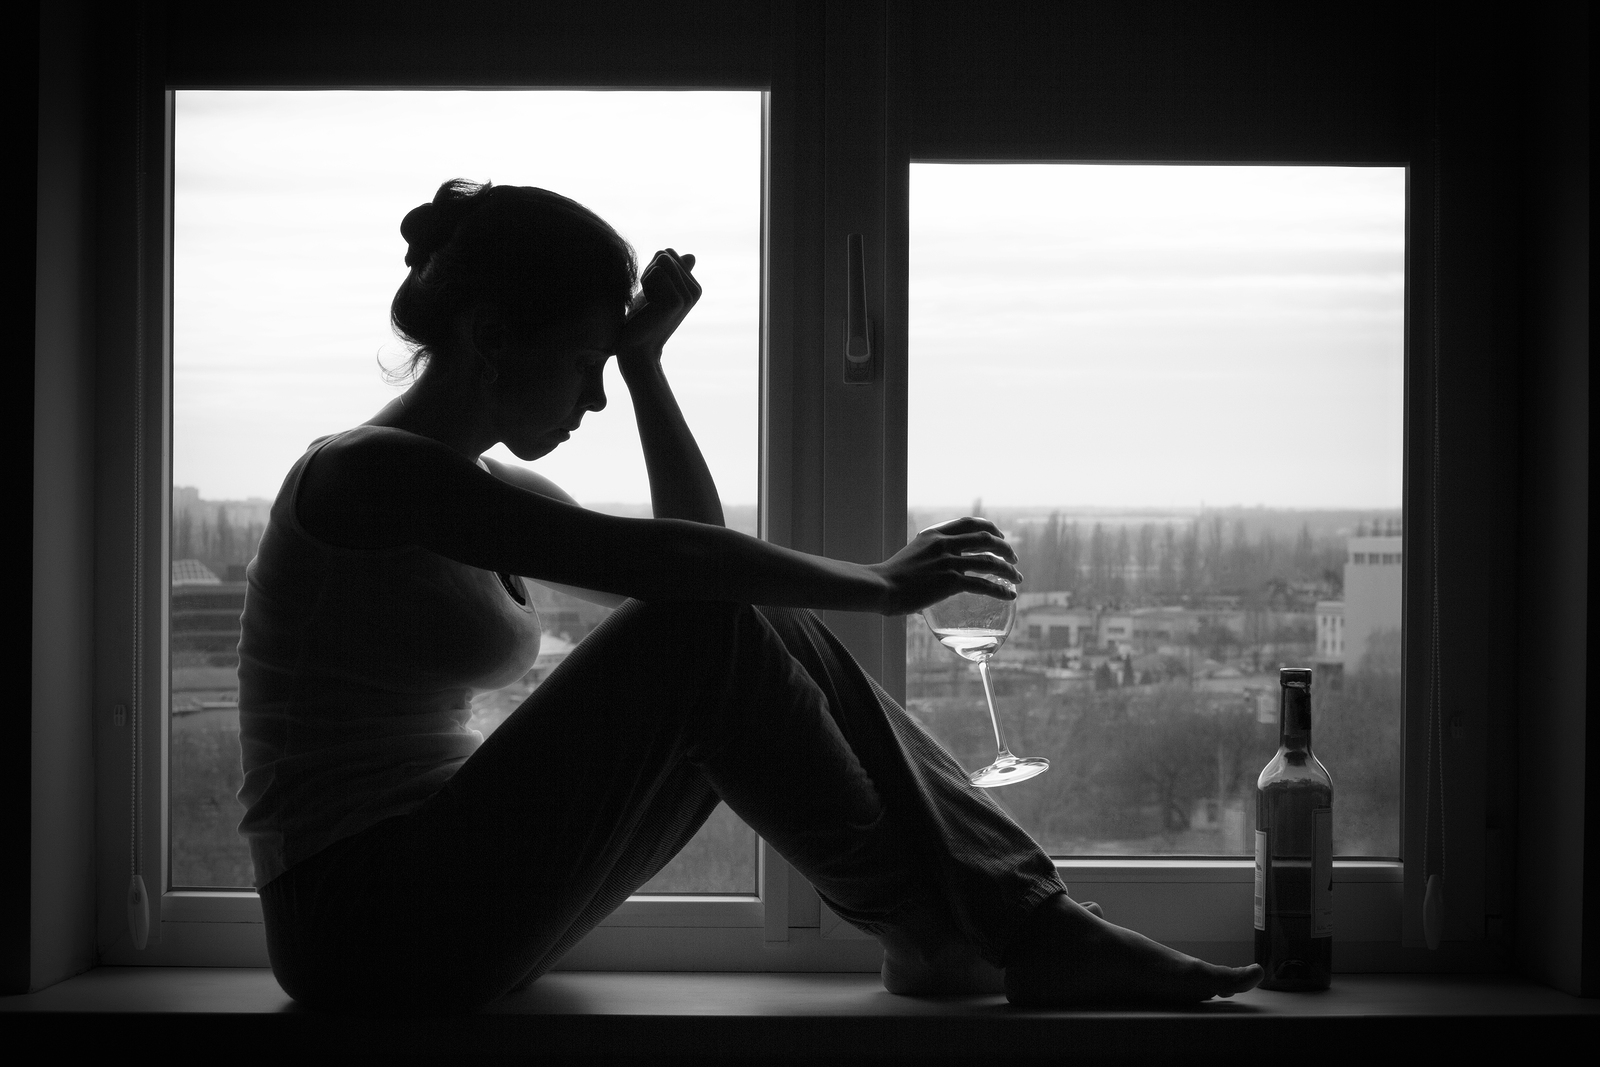 Dealing with Unresolved Trauma